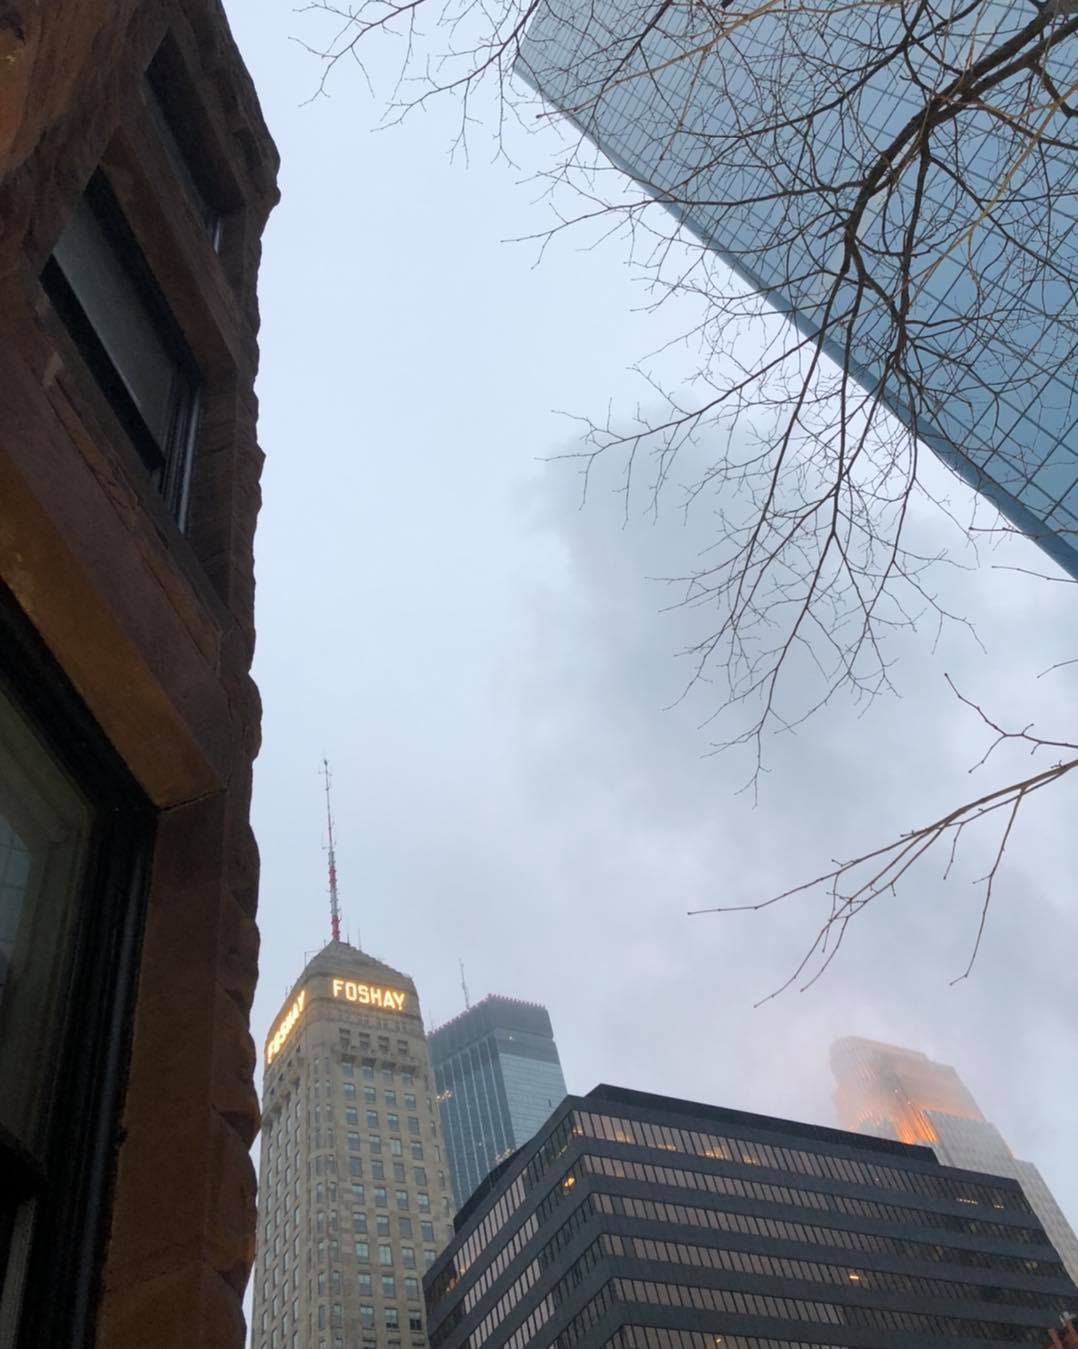 Misty mornings downtown when the skyscrapers disappear into the clouds.